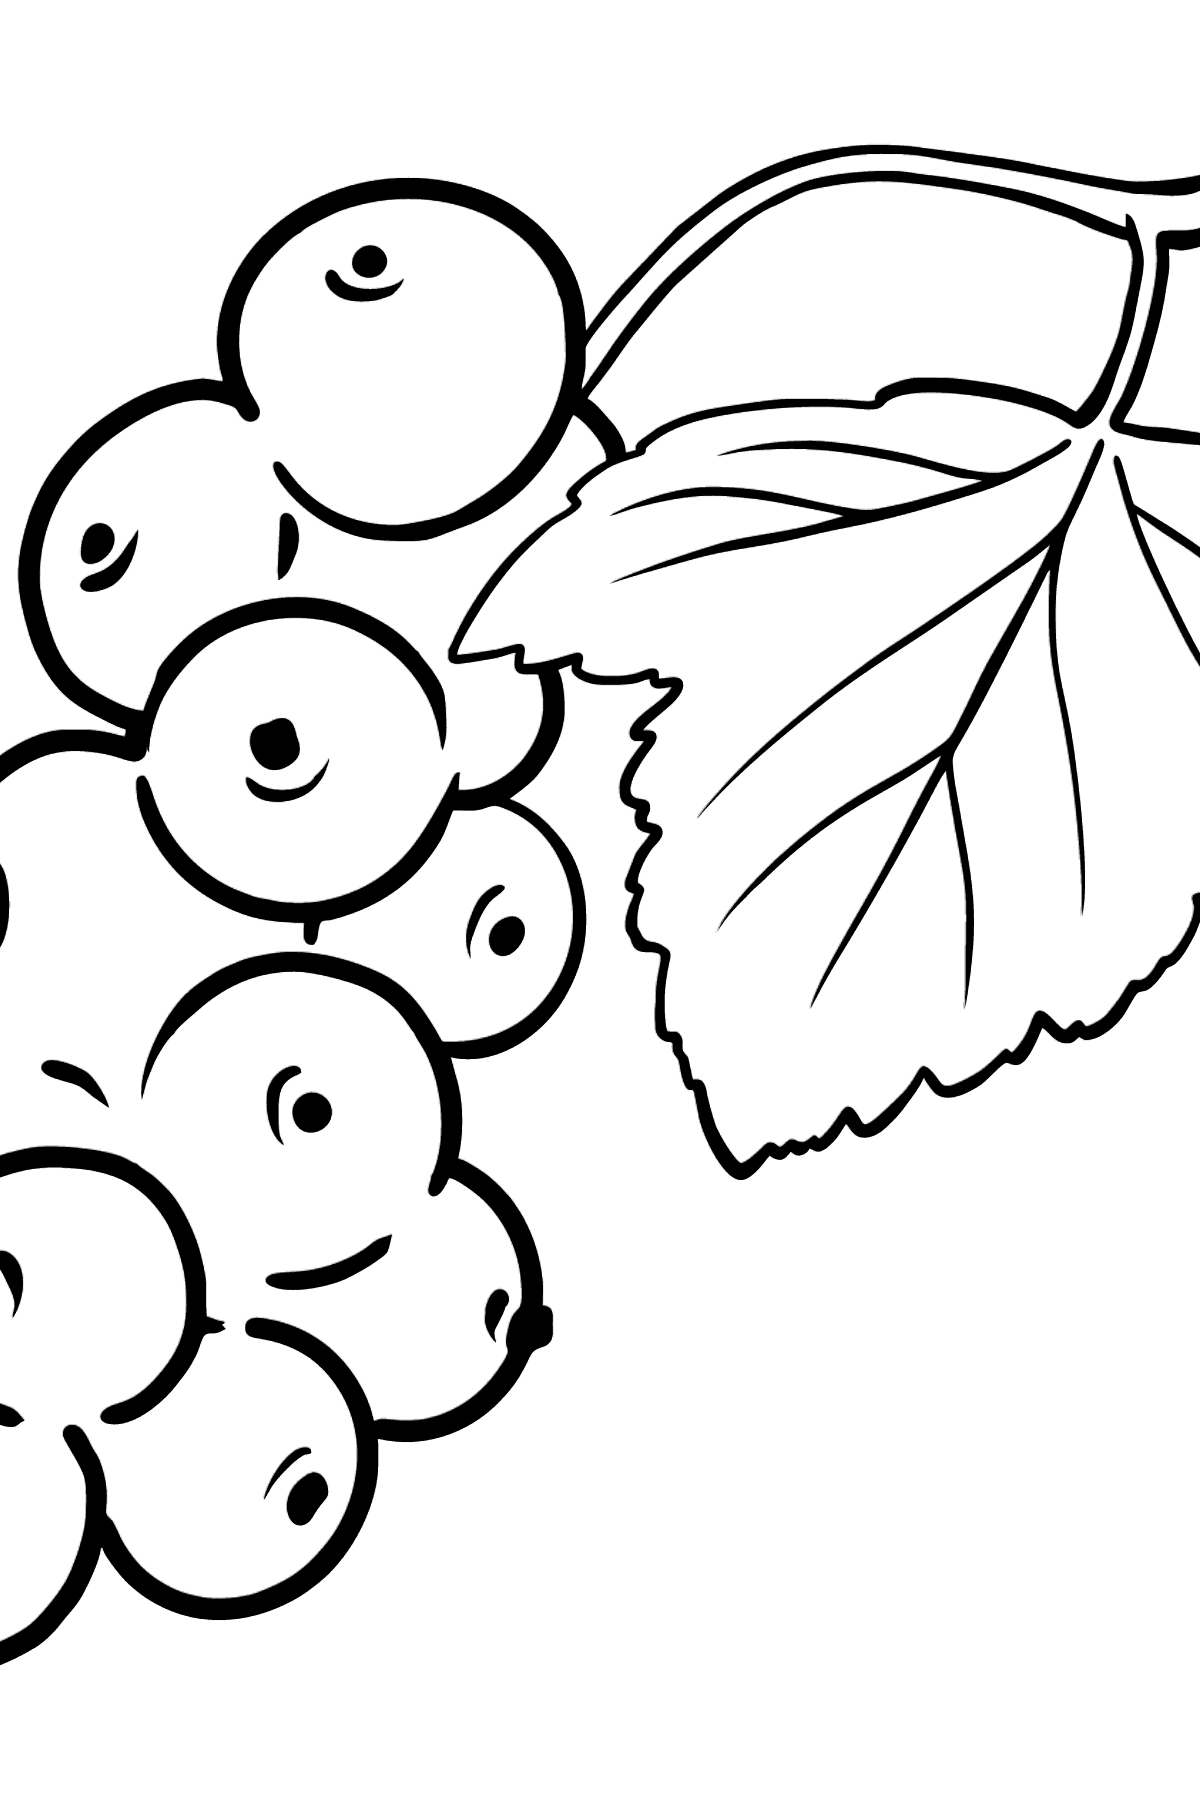 Currant coloring page - Coloring Pages for Kids